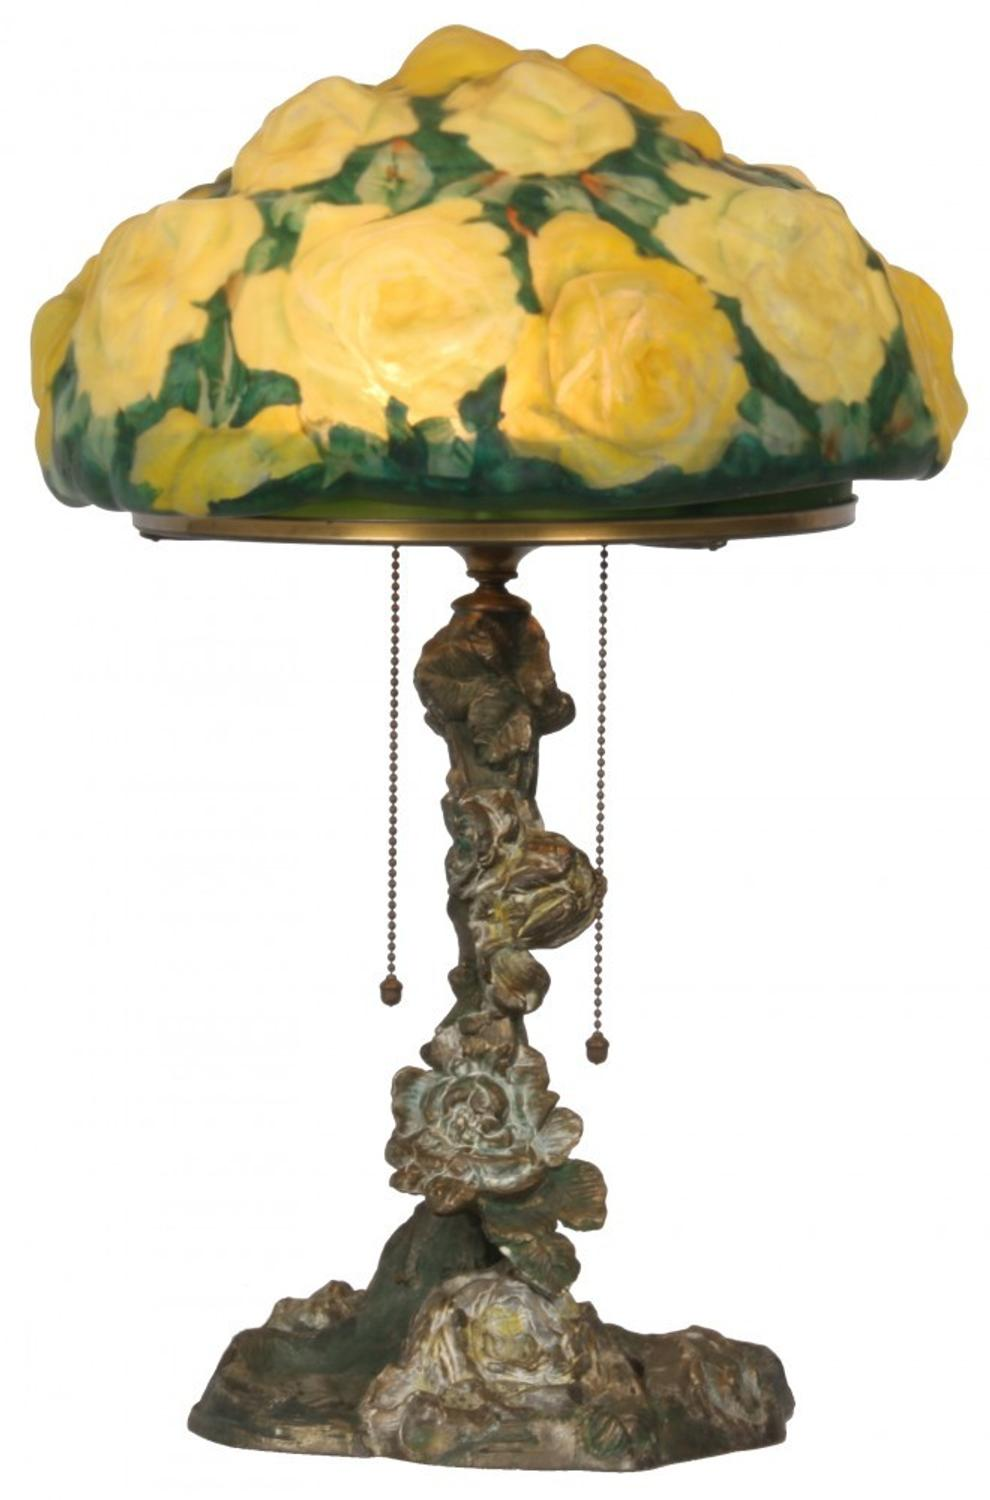 Pairpoint Puffy Lamp Antique Stoneware Duck Decoys And